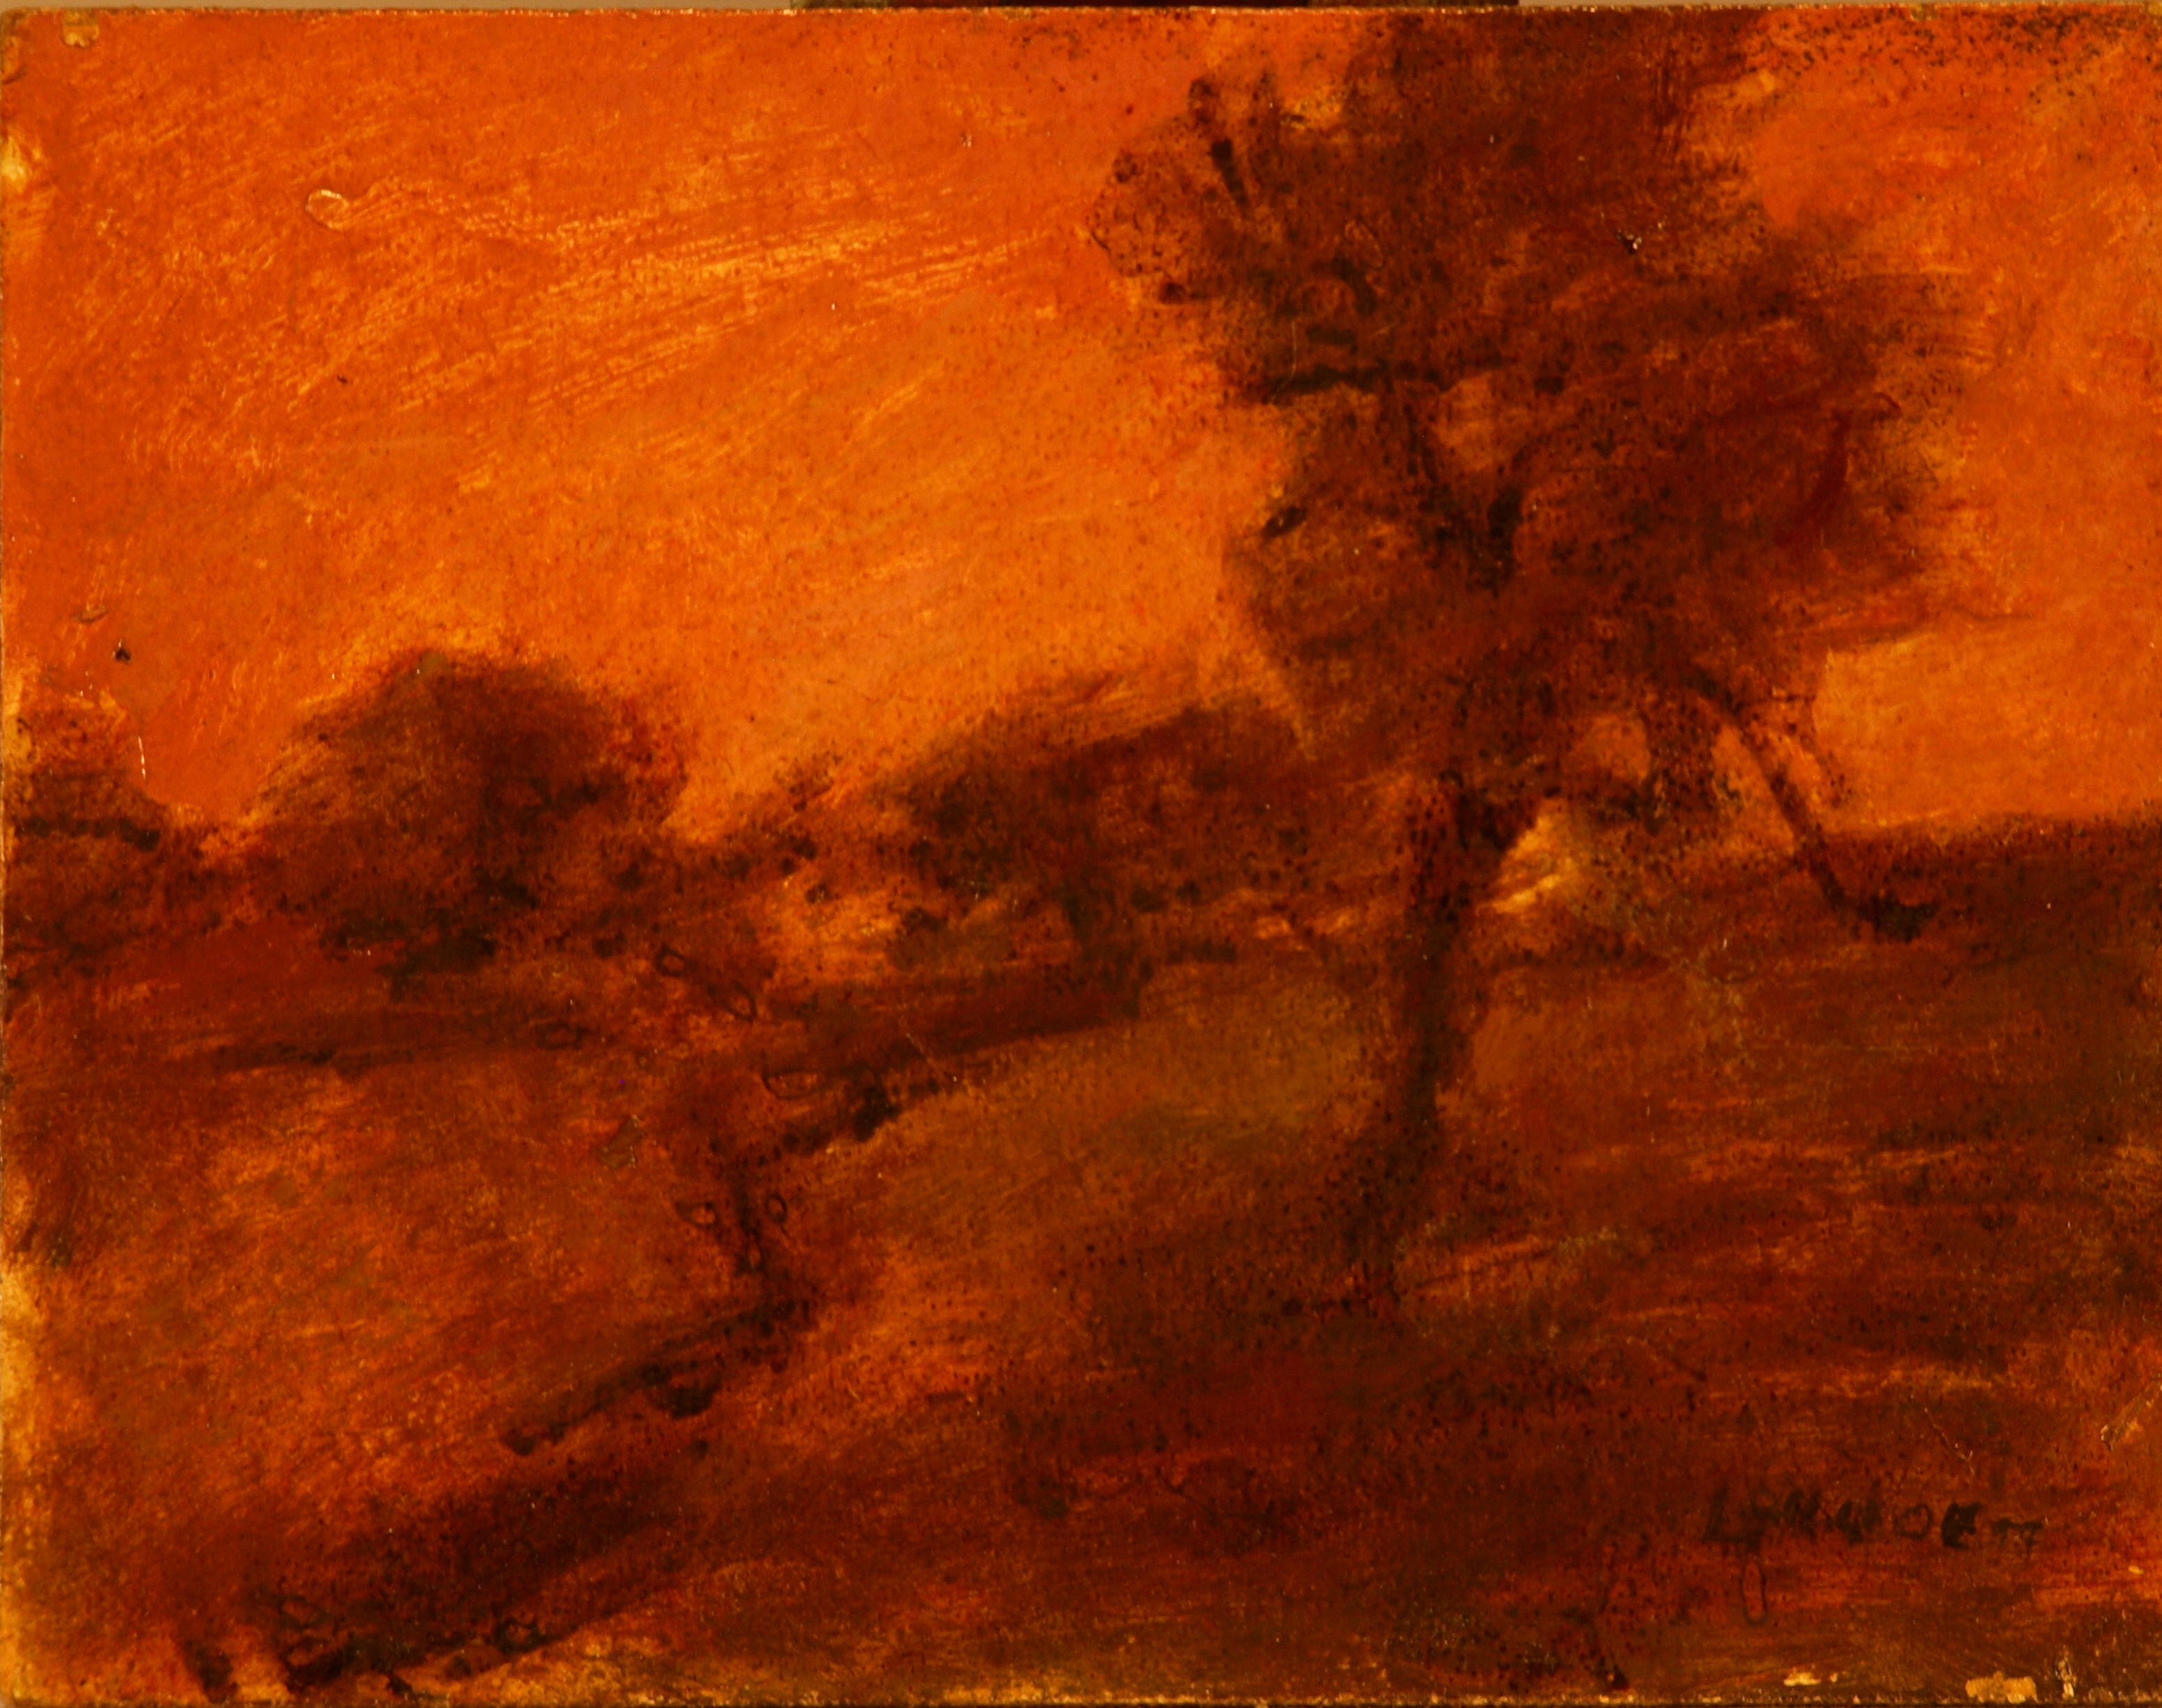 Glowing Atmosphere, Oil on Panel, 6 x 8 Inches, by Bernard Lennon, $125